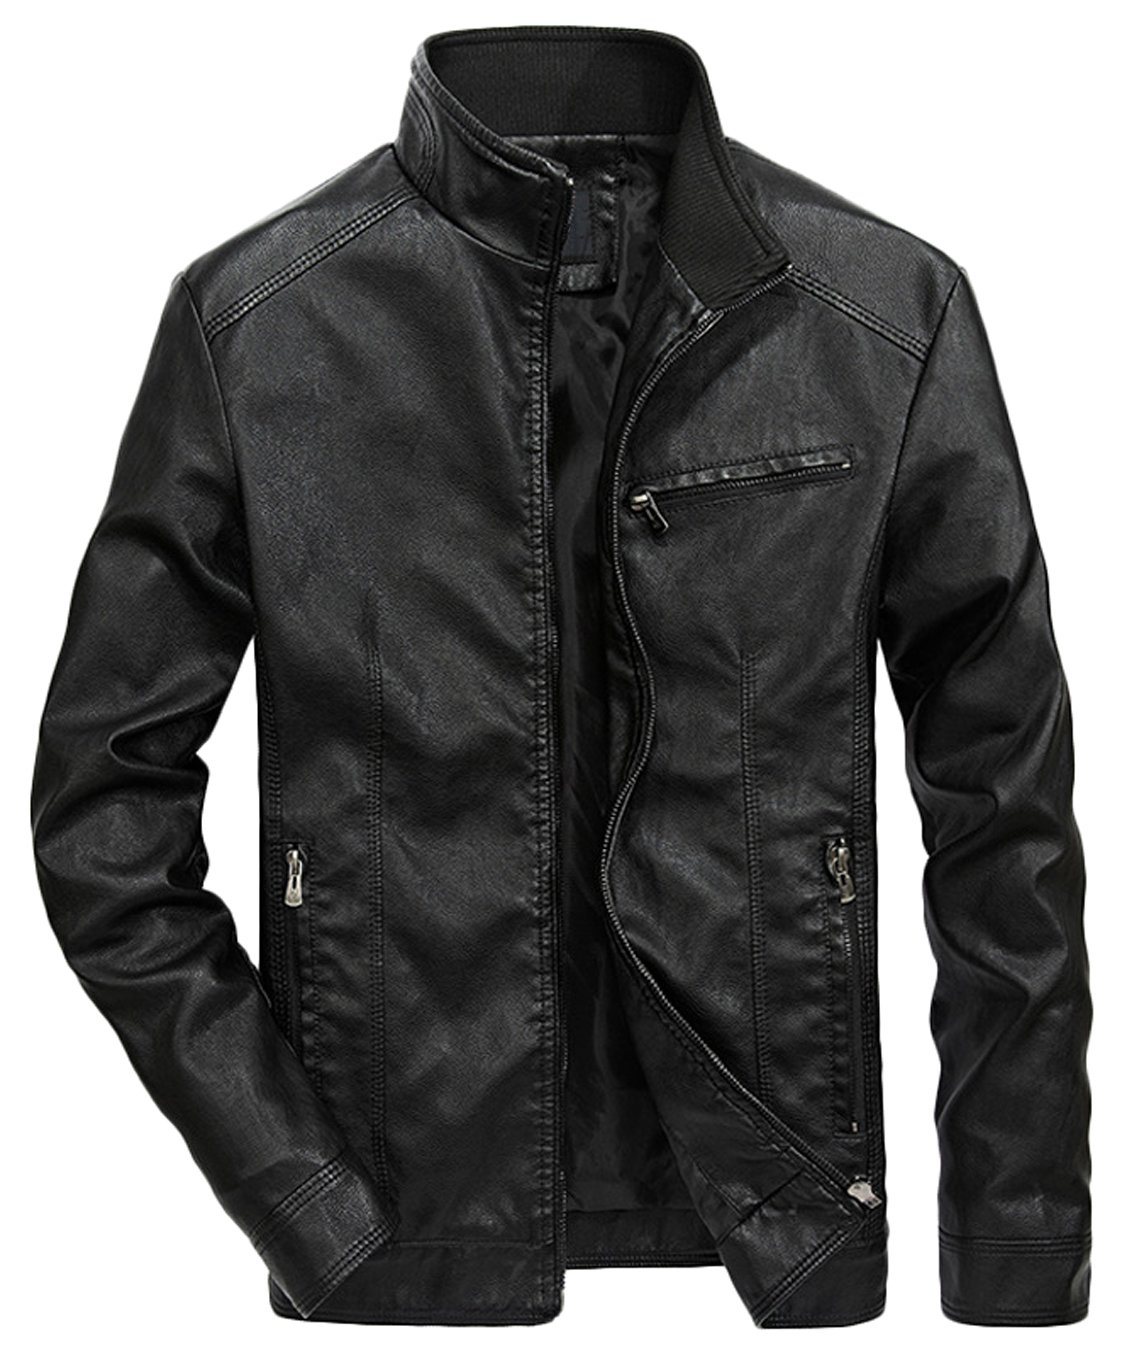 Youhan Men's Casual Full-Zip Retro Fitted PU Faux Leather Jacket (Medium, Black)